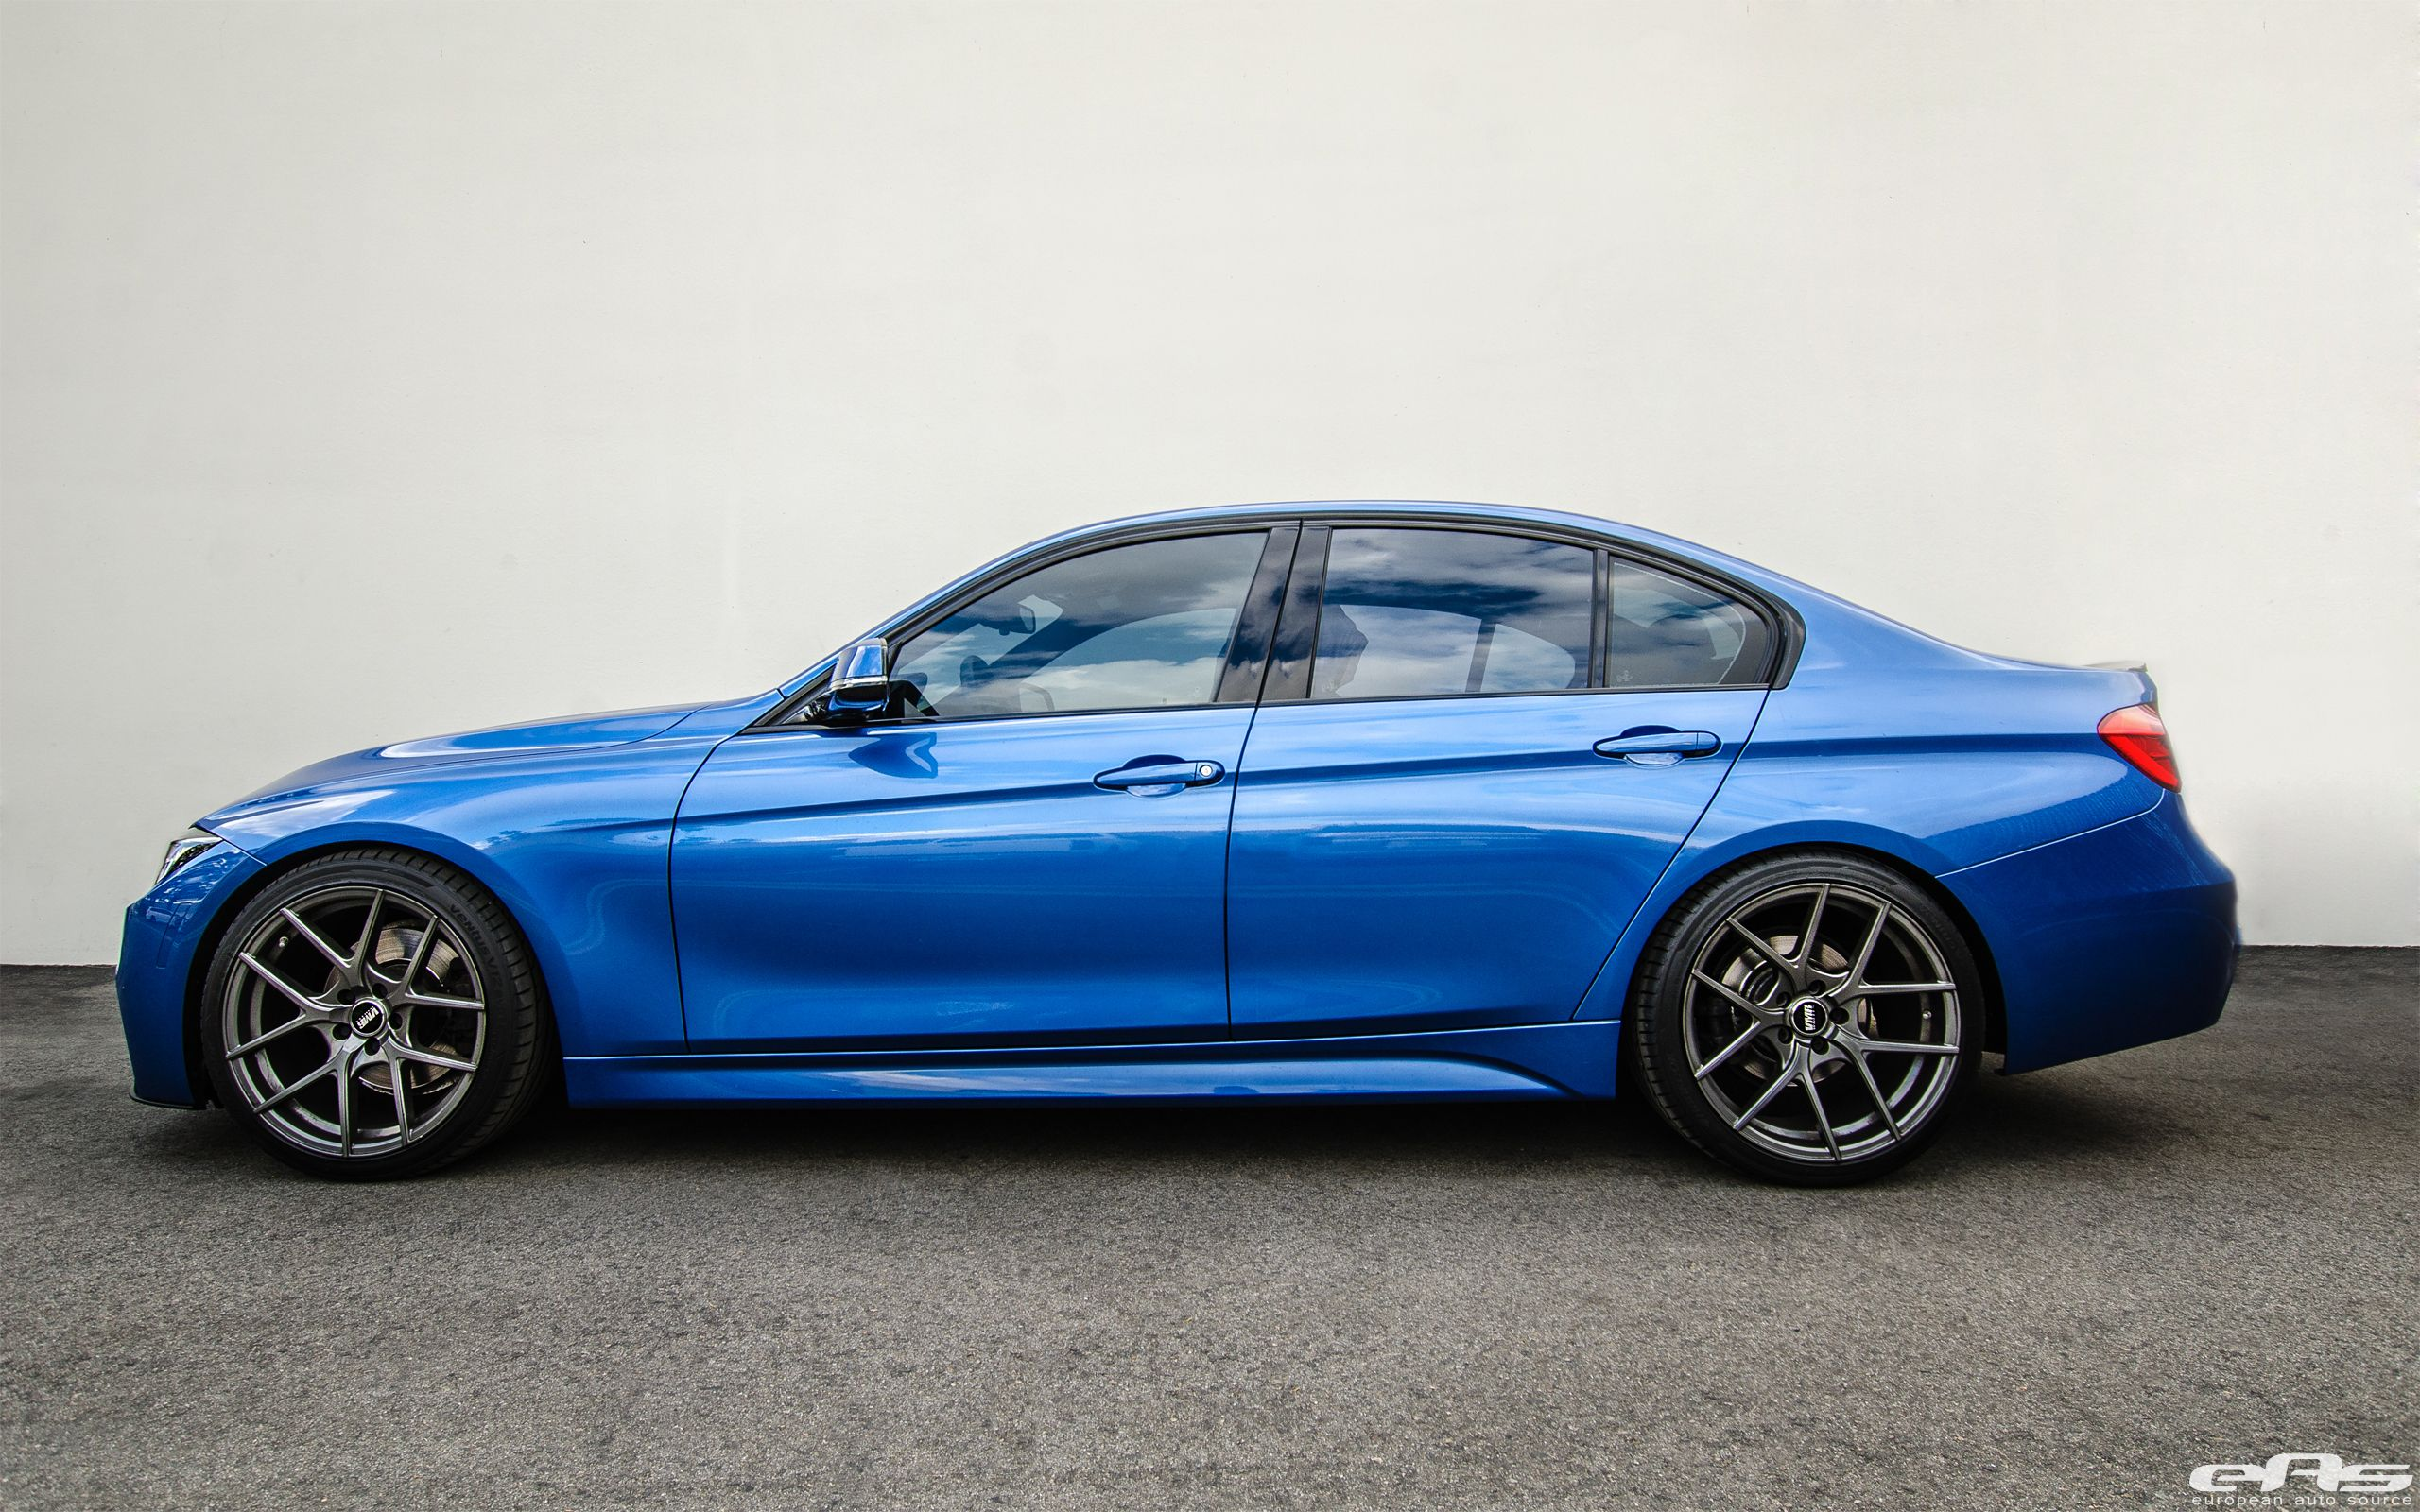 This Estoril Blue Bmw F30 328i Gets Some Visual Upgrades Estoril Blue Bmw Blue Bmw